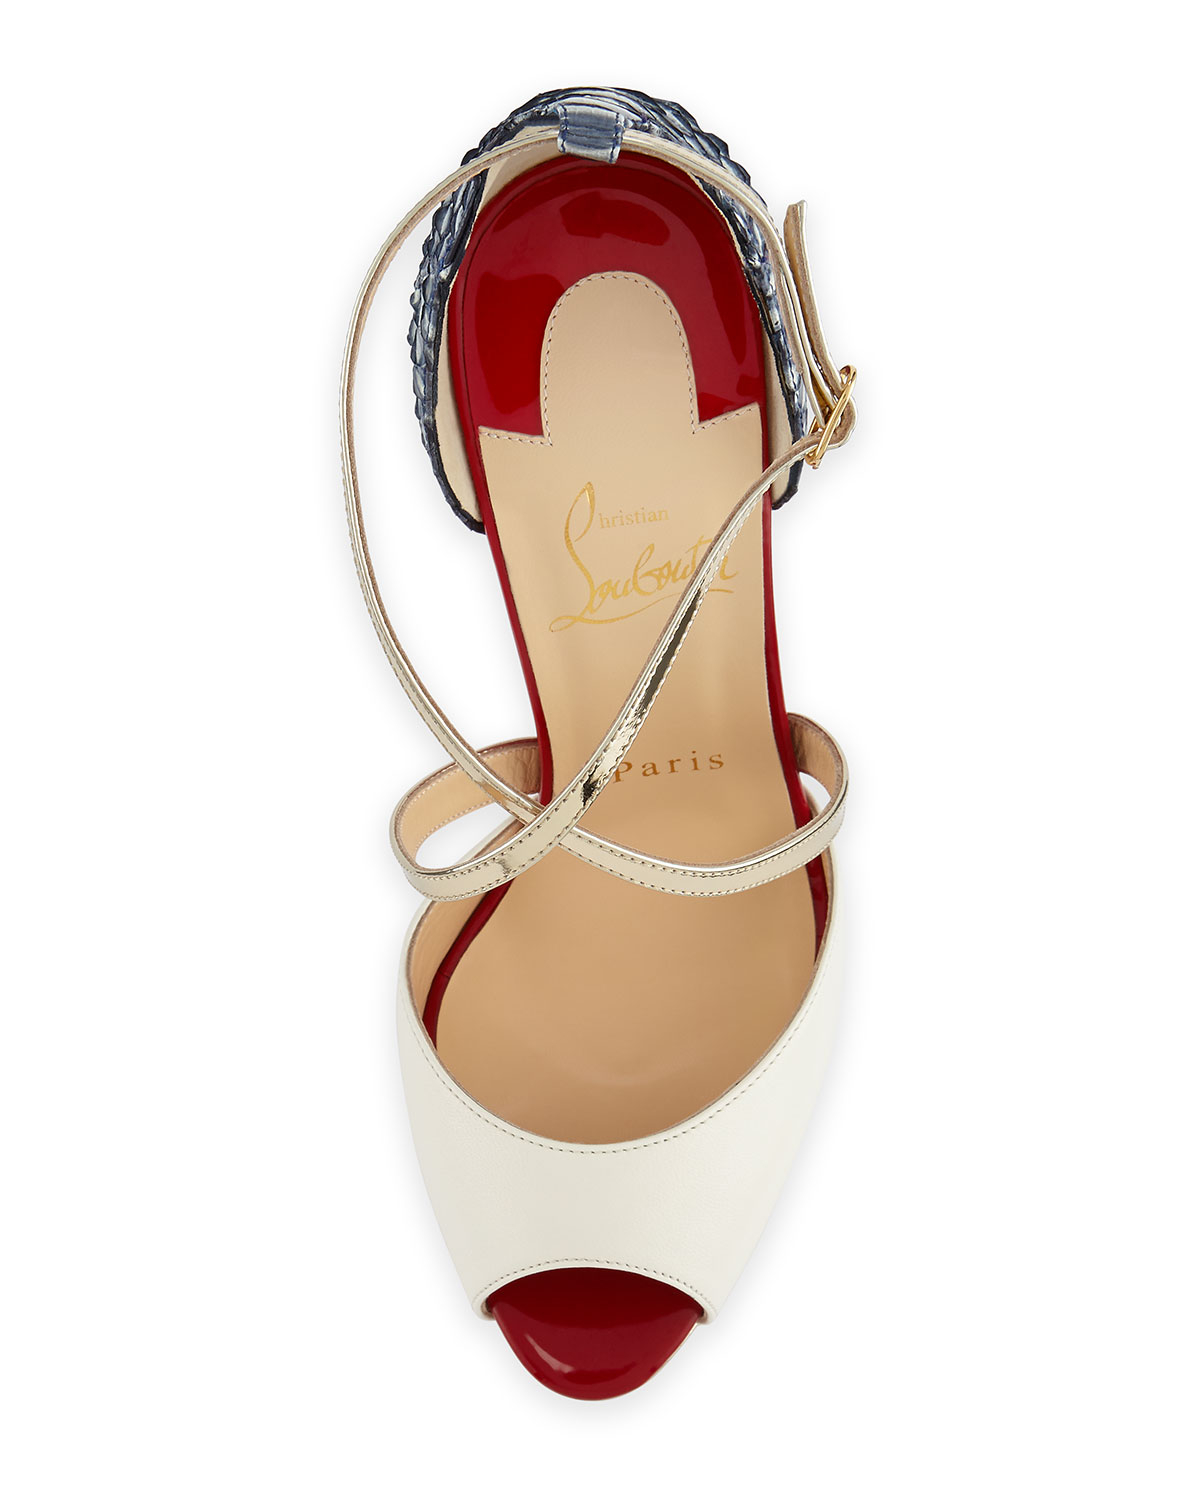 mens white christian louboutin - christian louboutin sandals Metallic multiple cross straps ...